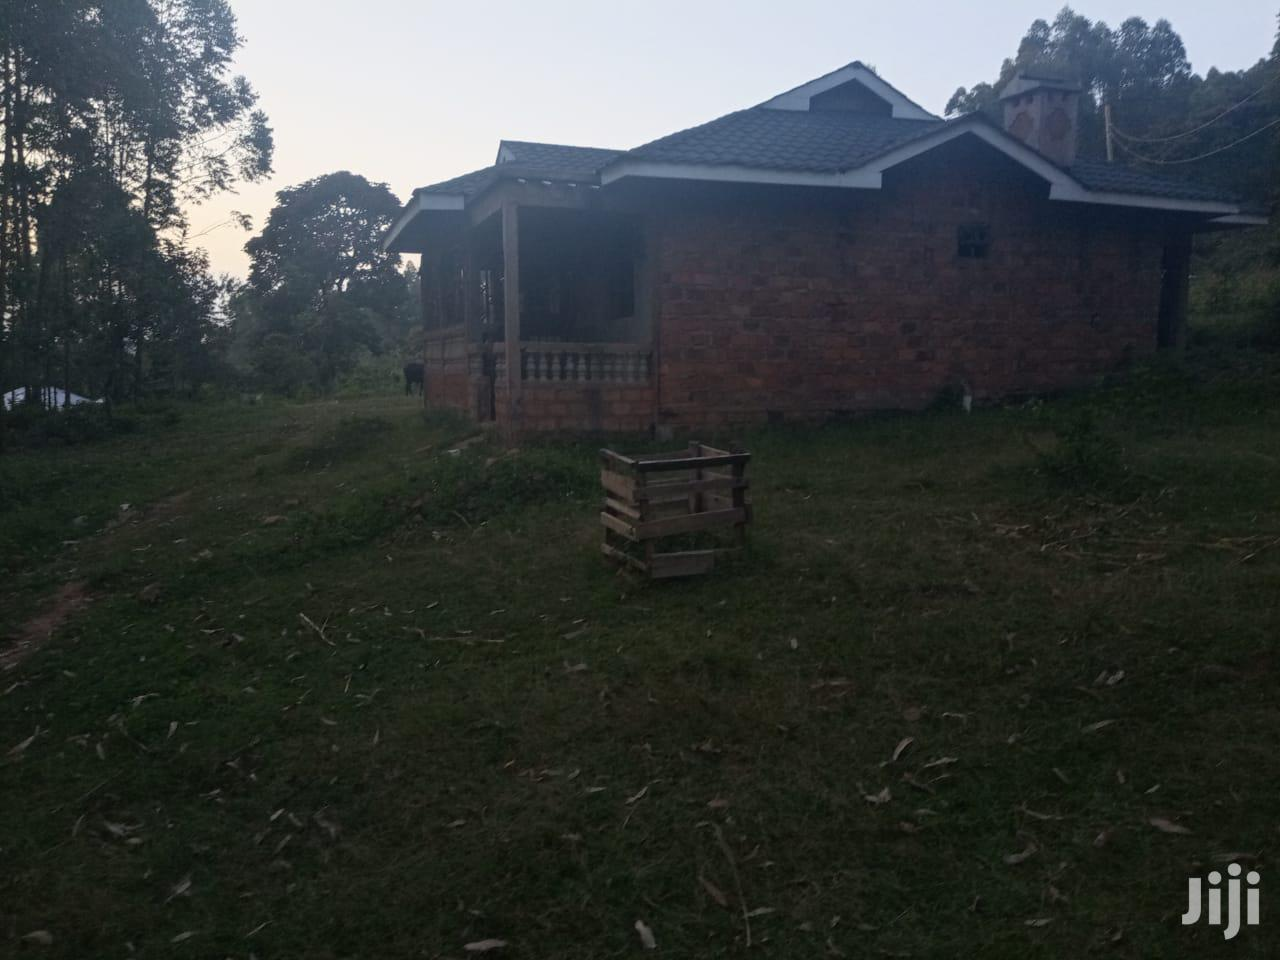 3 Bedroom Sitting on a 100 by 100 Plot